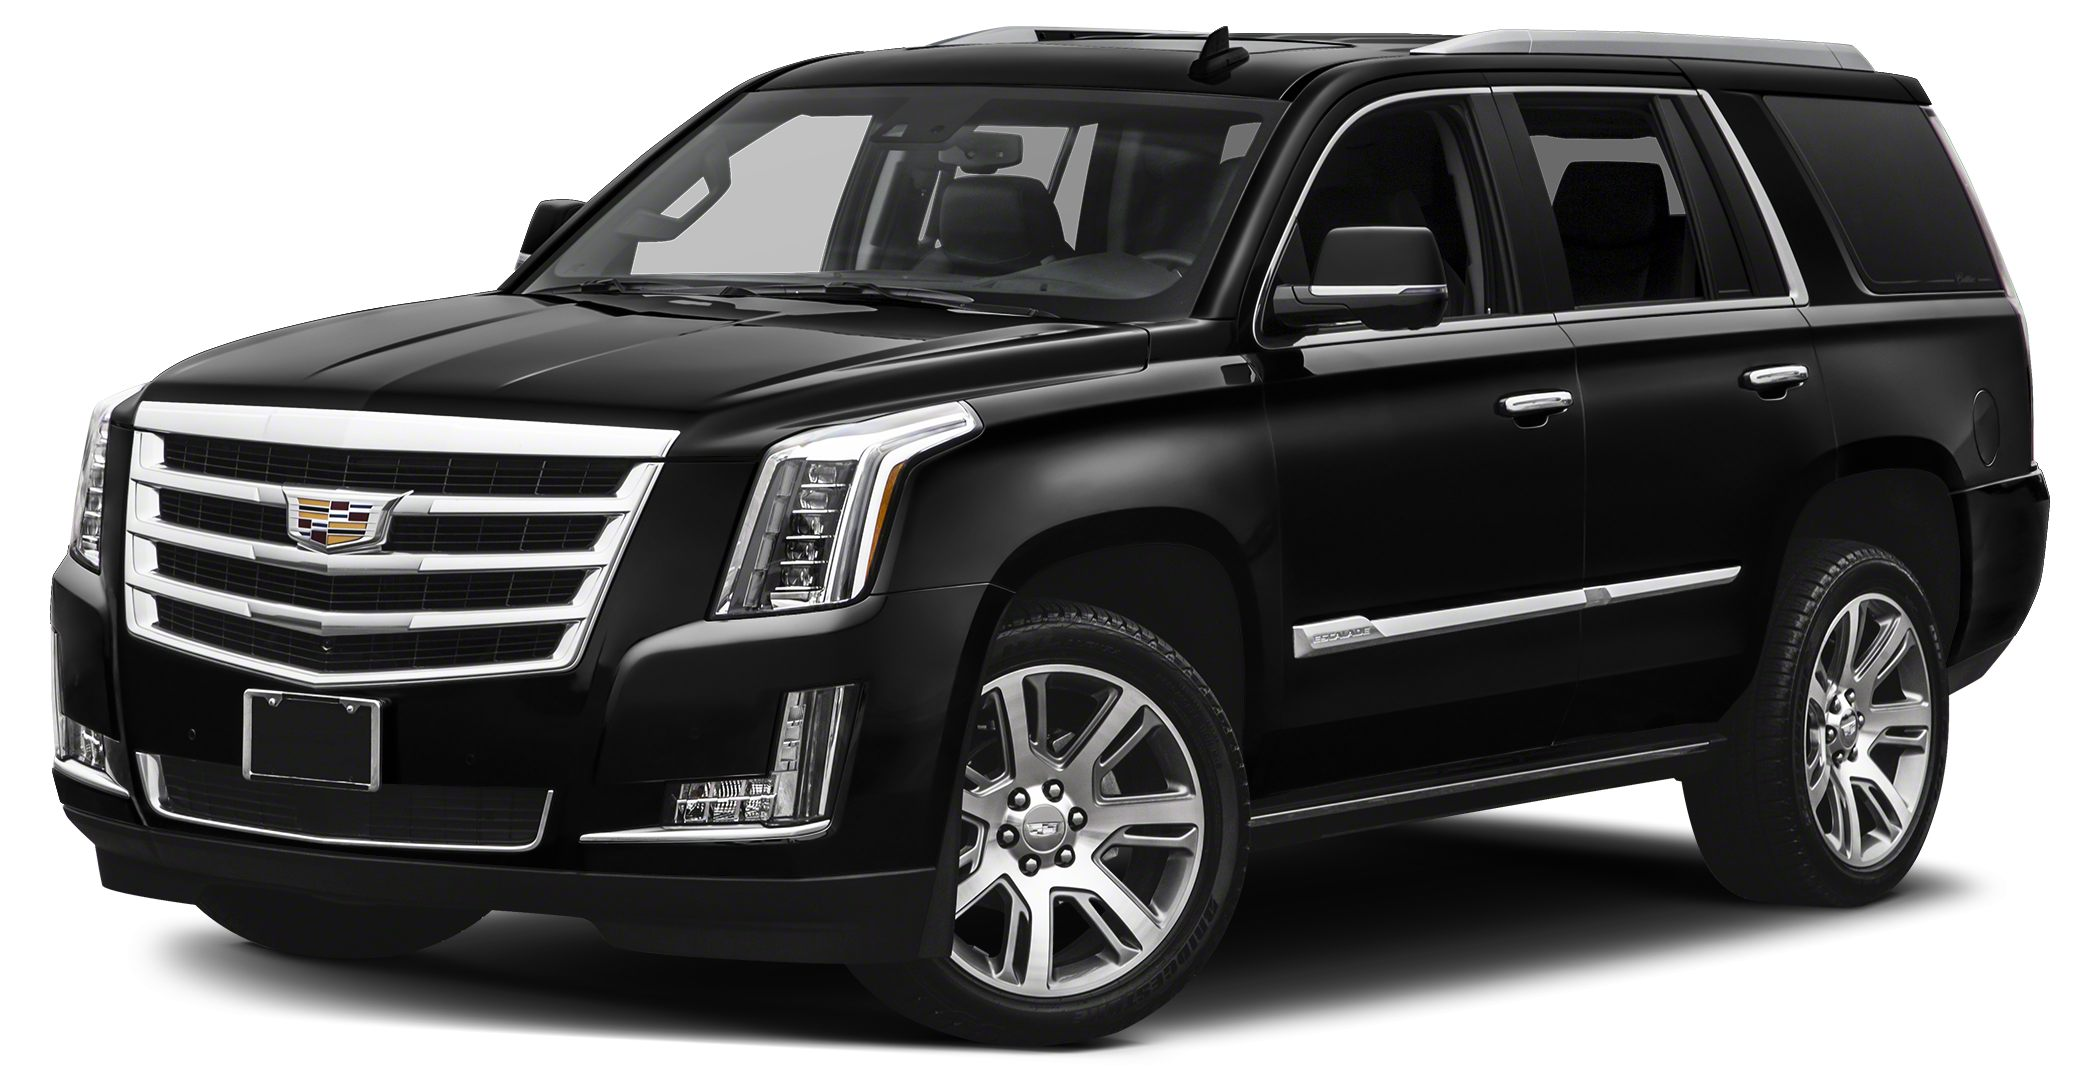 2017 Cadillac Escalade Premium Luxury Miles 0Color Black Raven Stock 1GYS4CKJ9HR249225 VIN 1